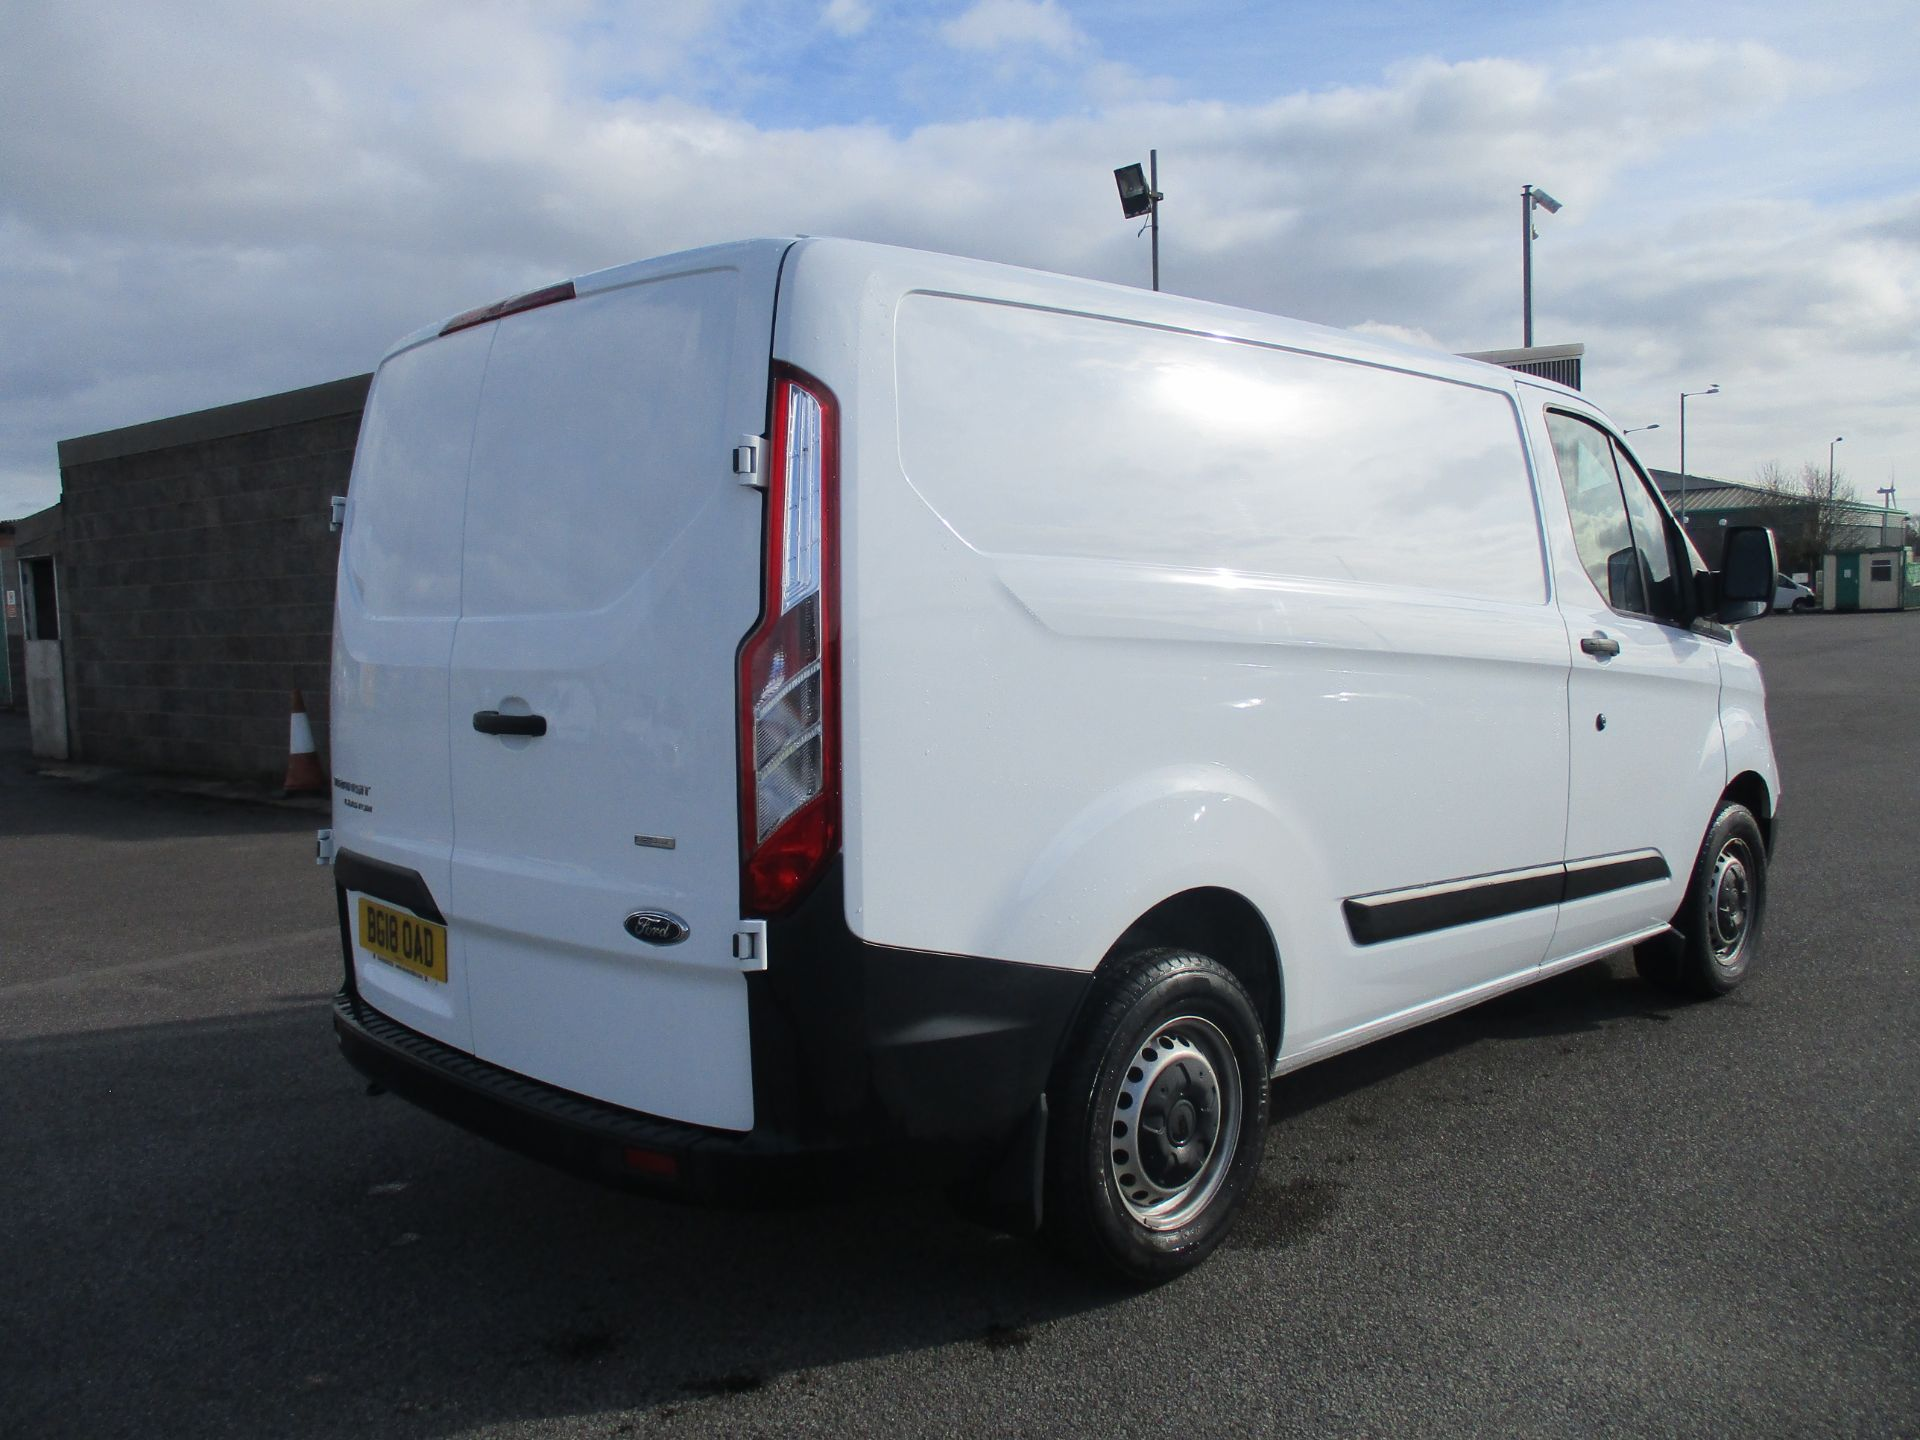 2018 Ford Transit Custom 300 L1 DIESEL FWD 2.0 TDCI 105PS LOW ROOF VAN EURO 6 (BG18OAD) Thumbnail 4